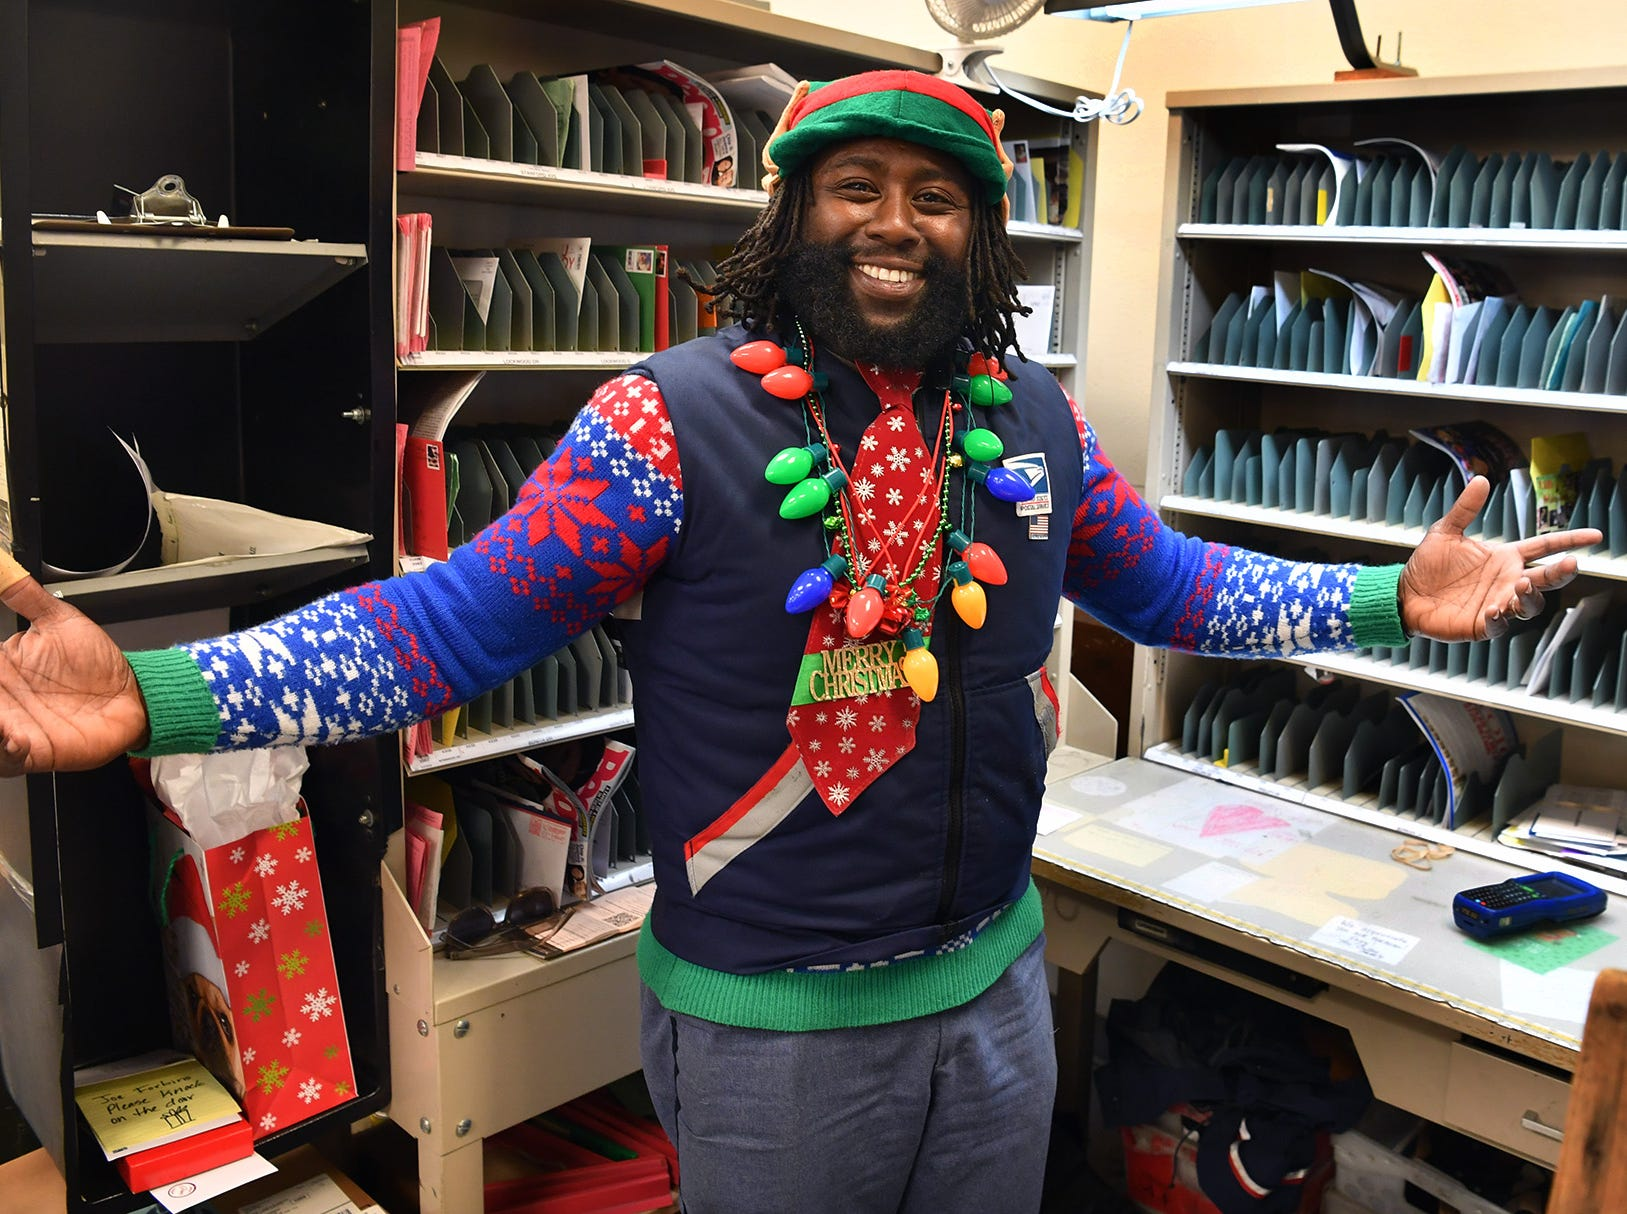 Joe Forbins, a mail carrier for the southwest area of Wichita Falls, enjoys spreading holiday cheer, embellishing his uniform with Christmas sweater, elf hat and ears, and a fun tie.